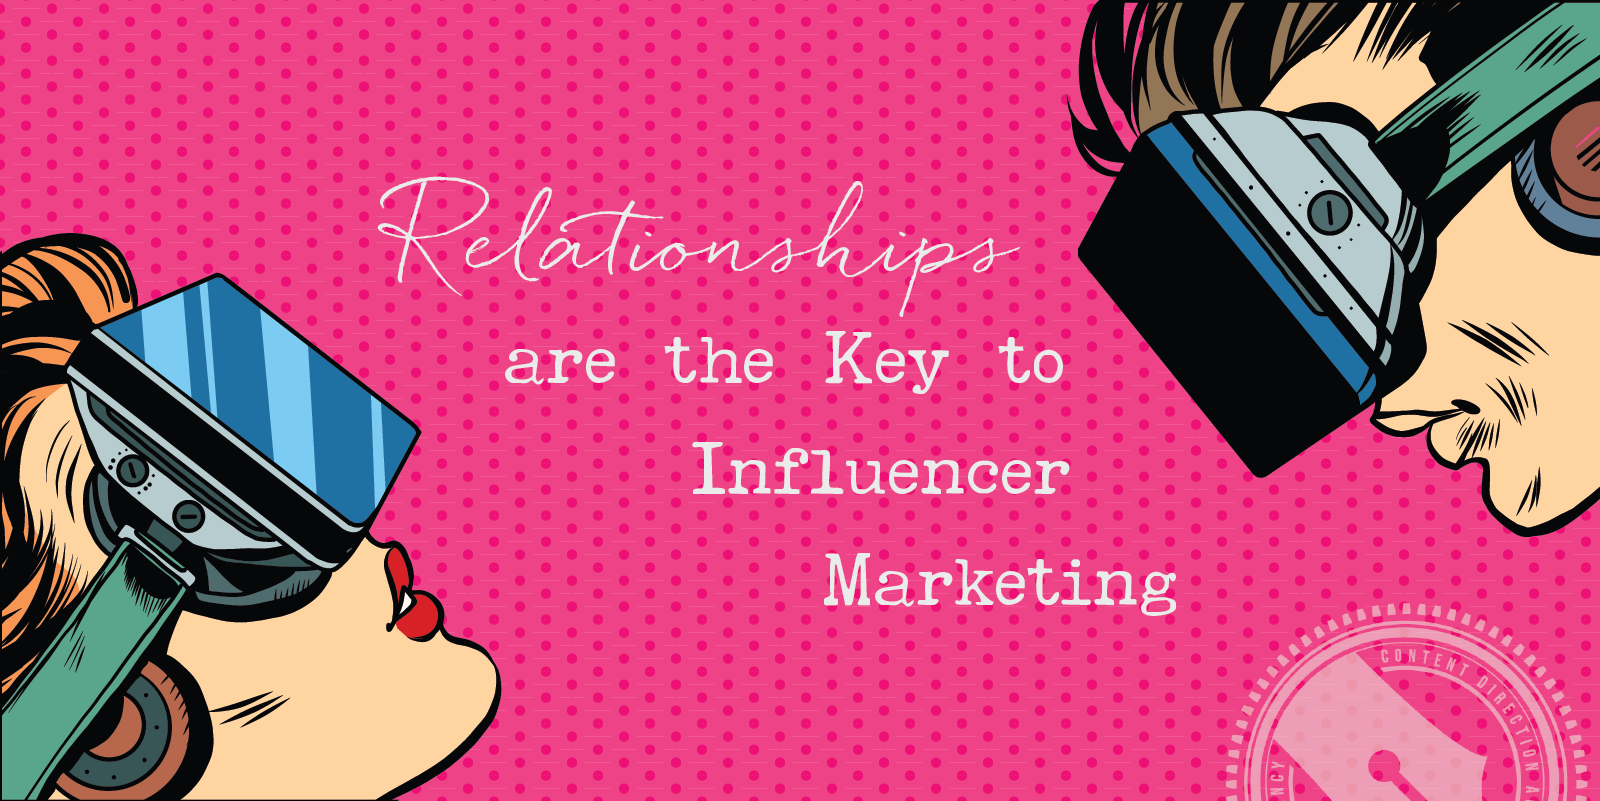 Relationships are the Key to Influencer Marketing